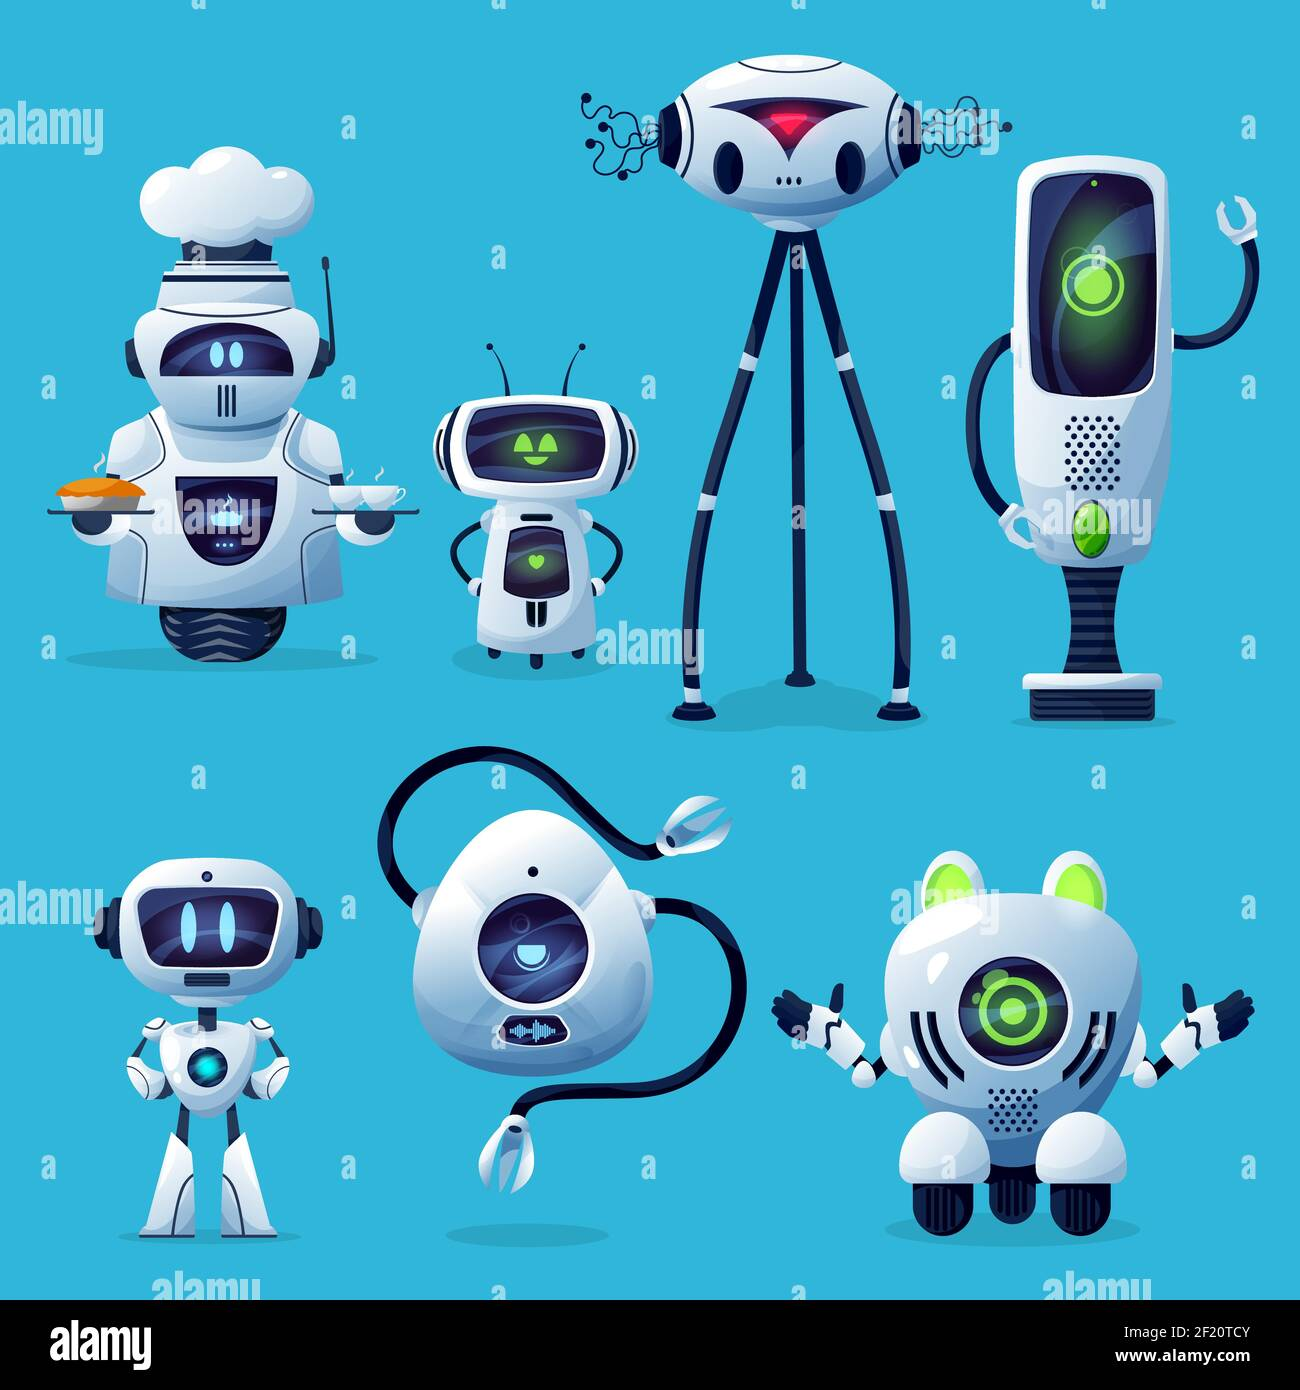 Cartoon robots vector icons, cute cyborg characters, toys or bots ...